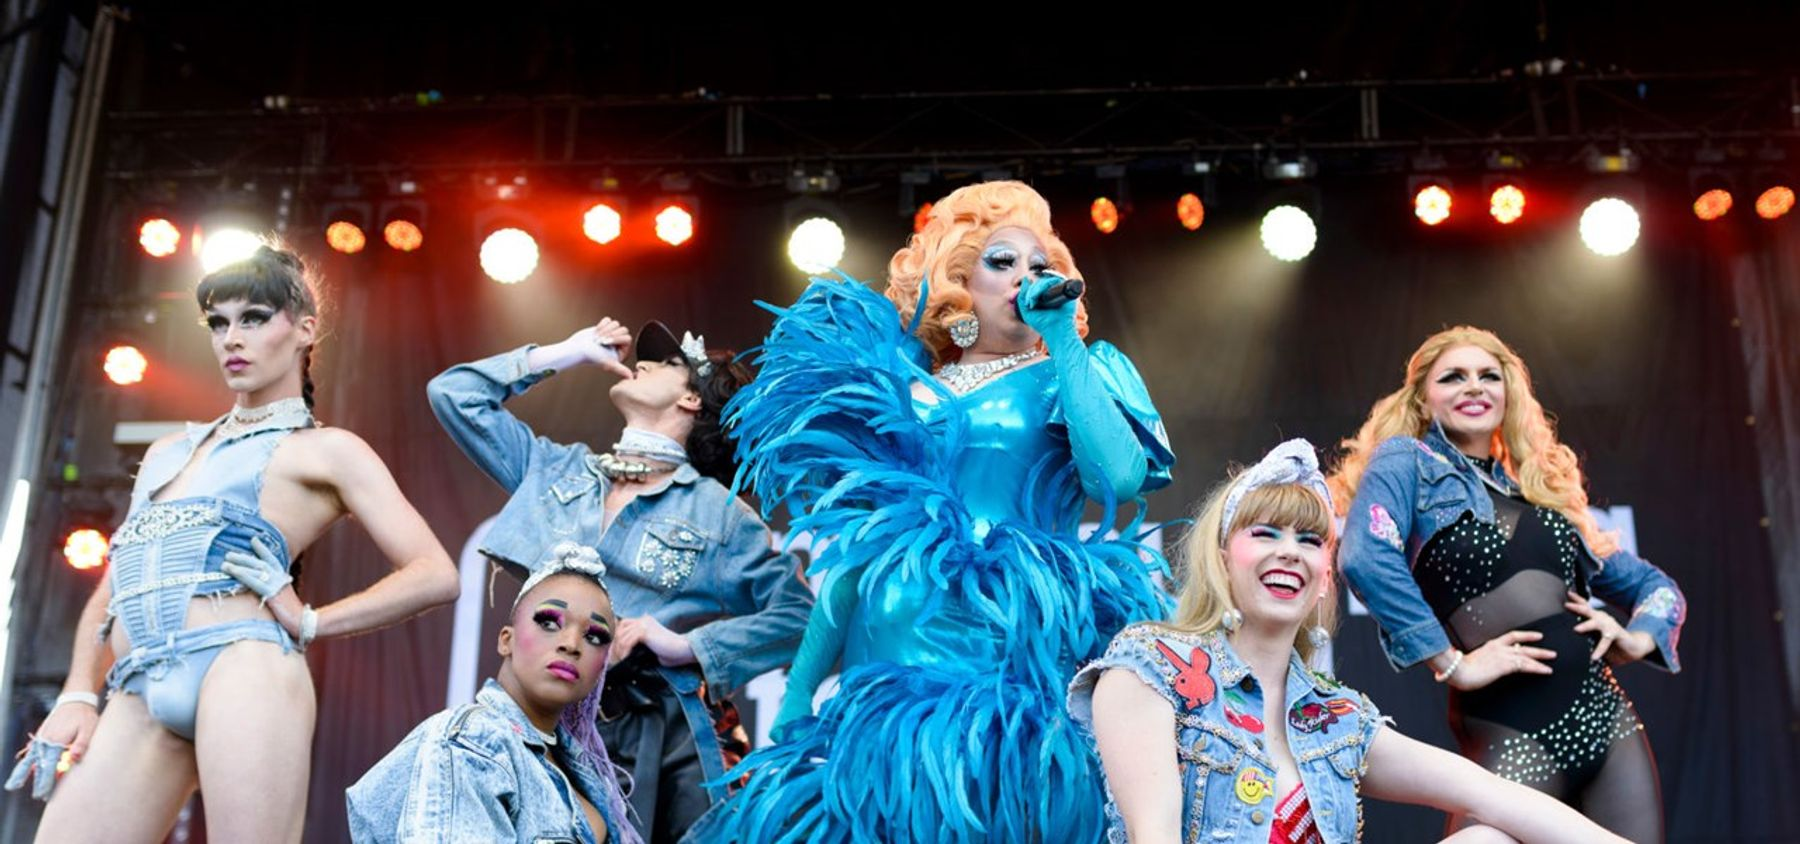 Six people putting on a drag show, posing. Some cities will be able to have live, in-person events like this for Pride 2021.